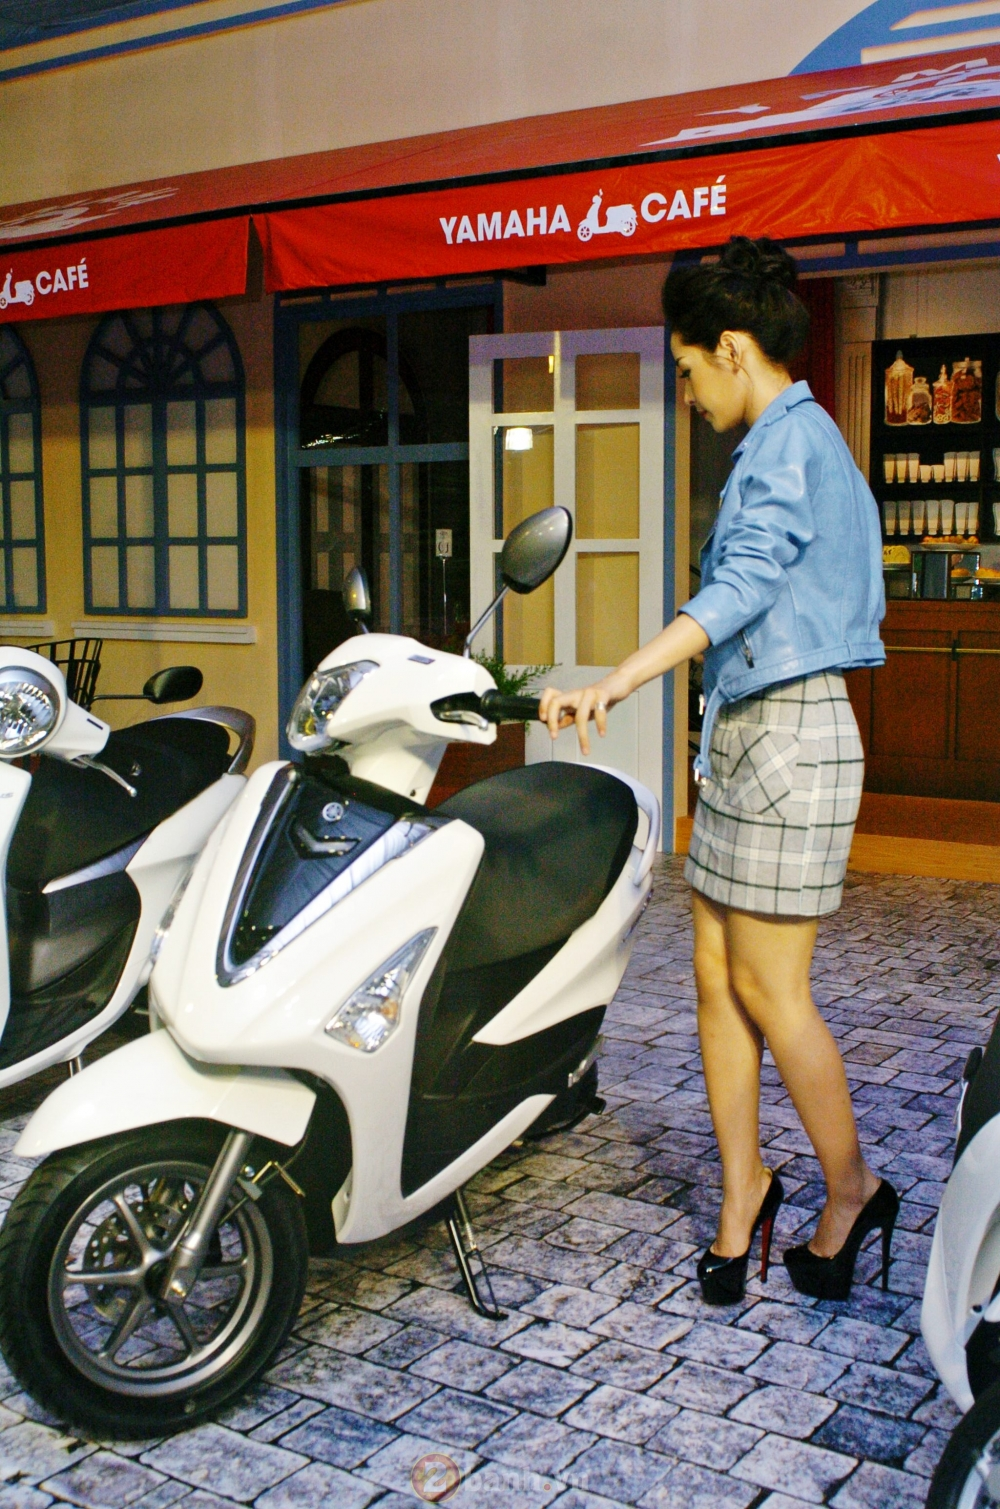 Boi canh the hien ve dep For Beautiful Ride tai Yamaha Cafe - 6